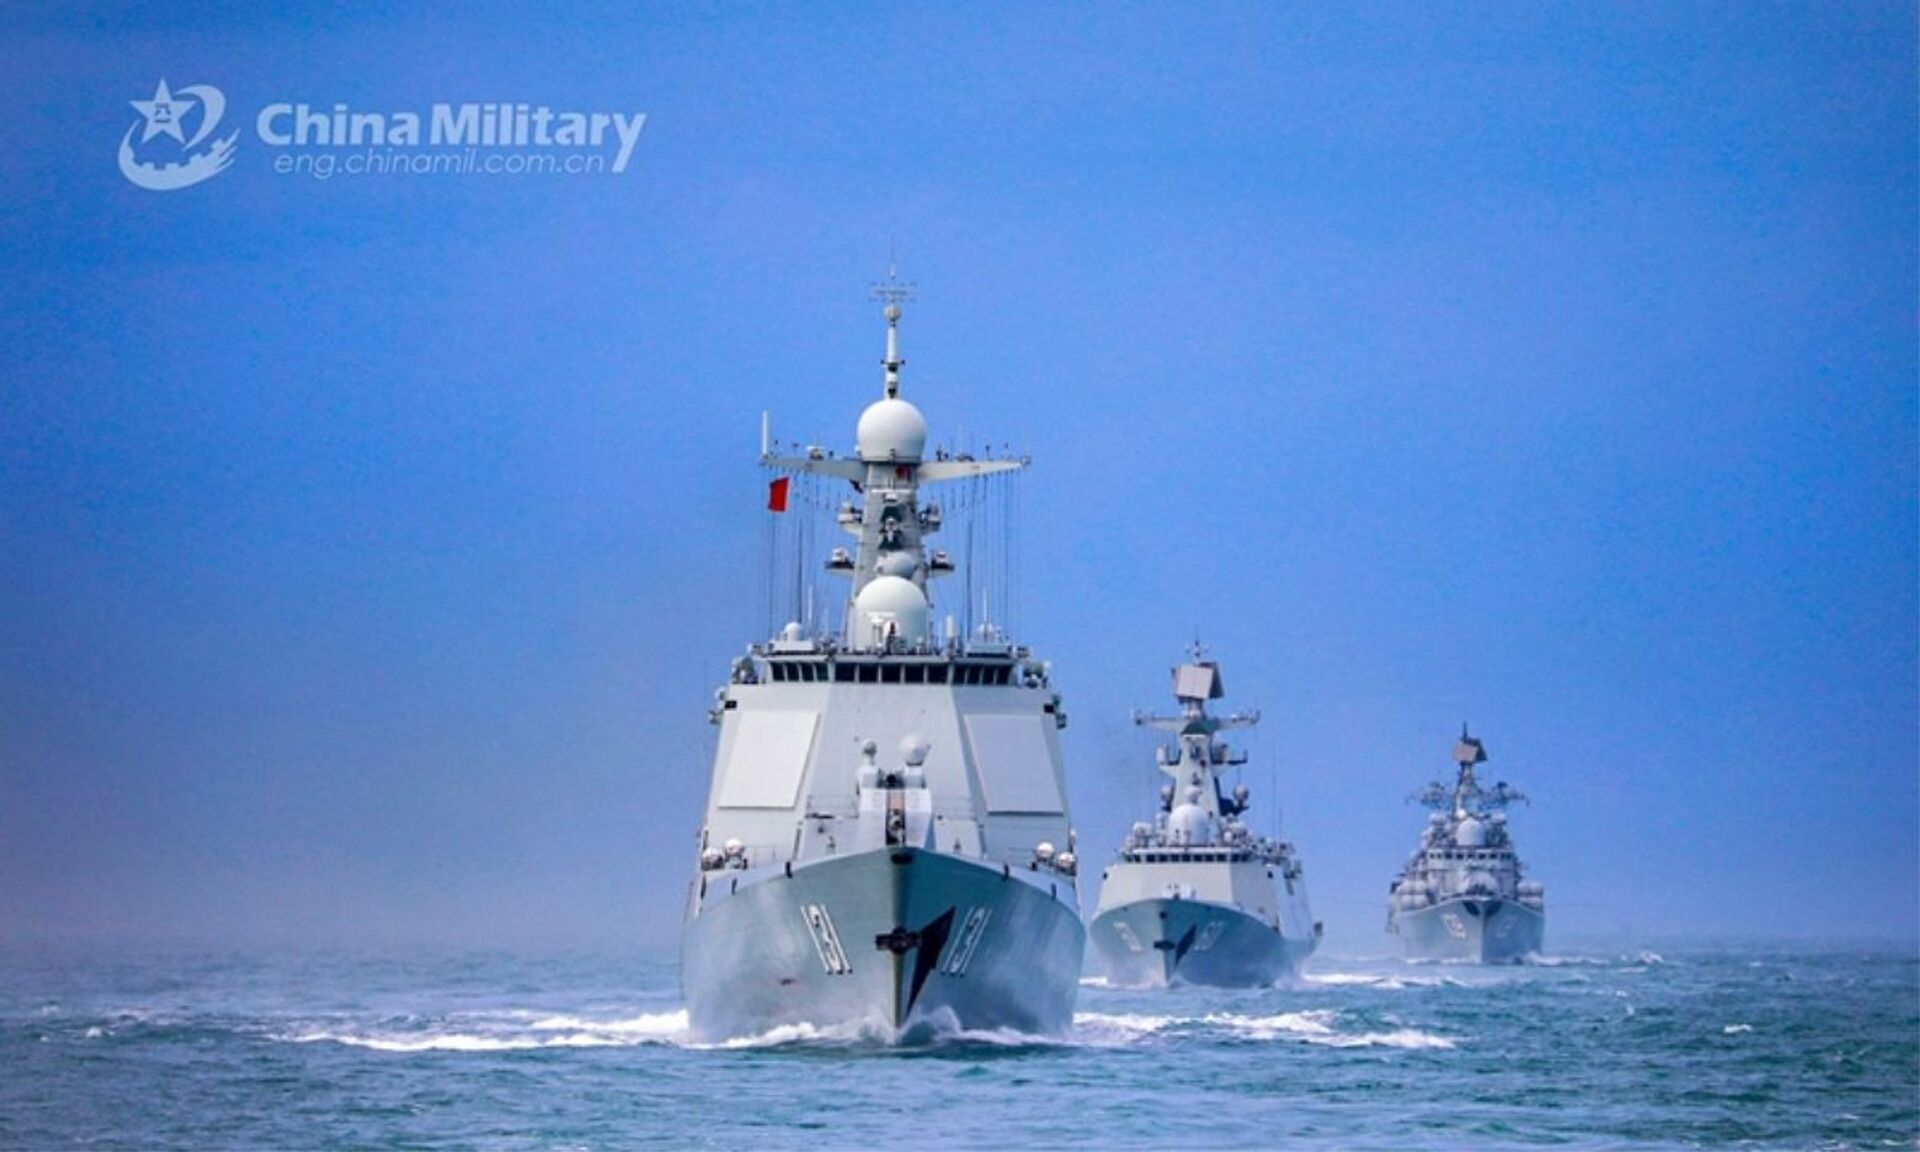 A naval fleet comprised of the guided-missile destroyers Ningbo (Hull 139) and Taiyuan (Hull 131), as well as the guided-missile frigate Nantong (Hull 601), steams in astern formation in waters of the East China Sea during a maritime training drill in late January, 2021 - Sputnik International, 1920, 07.09.2021